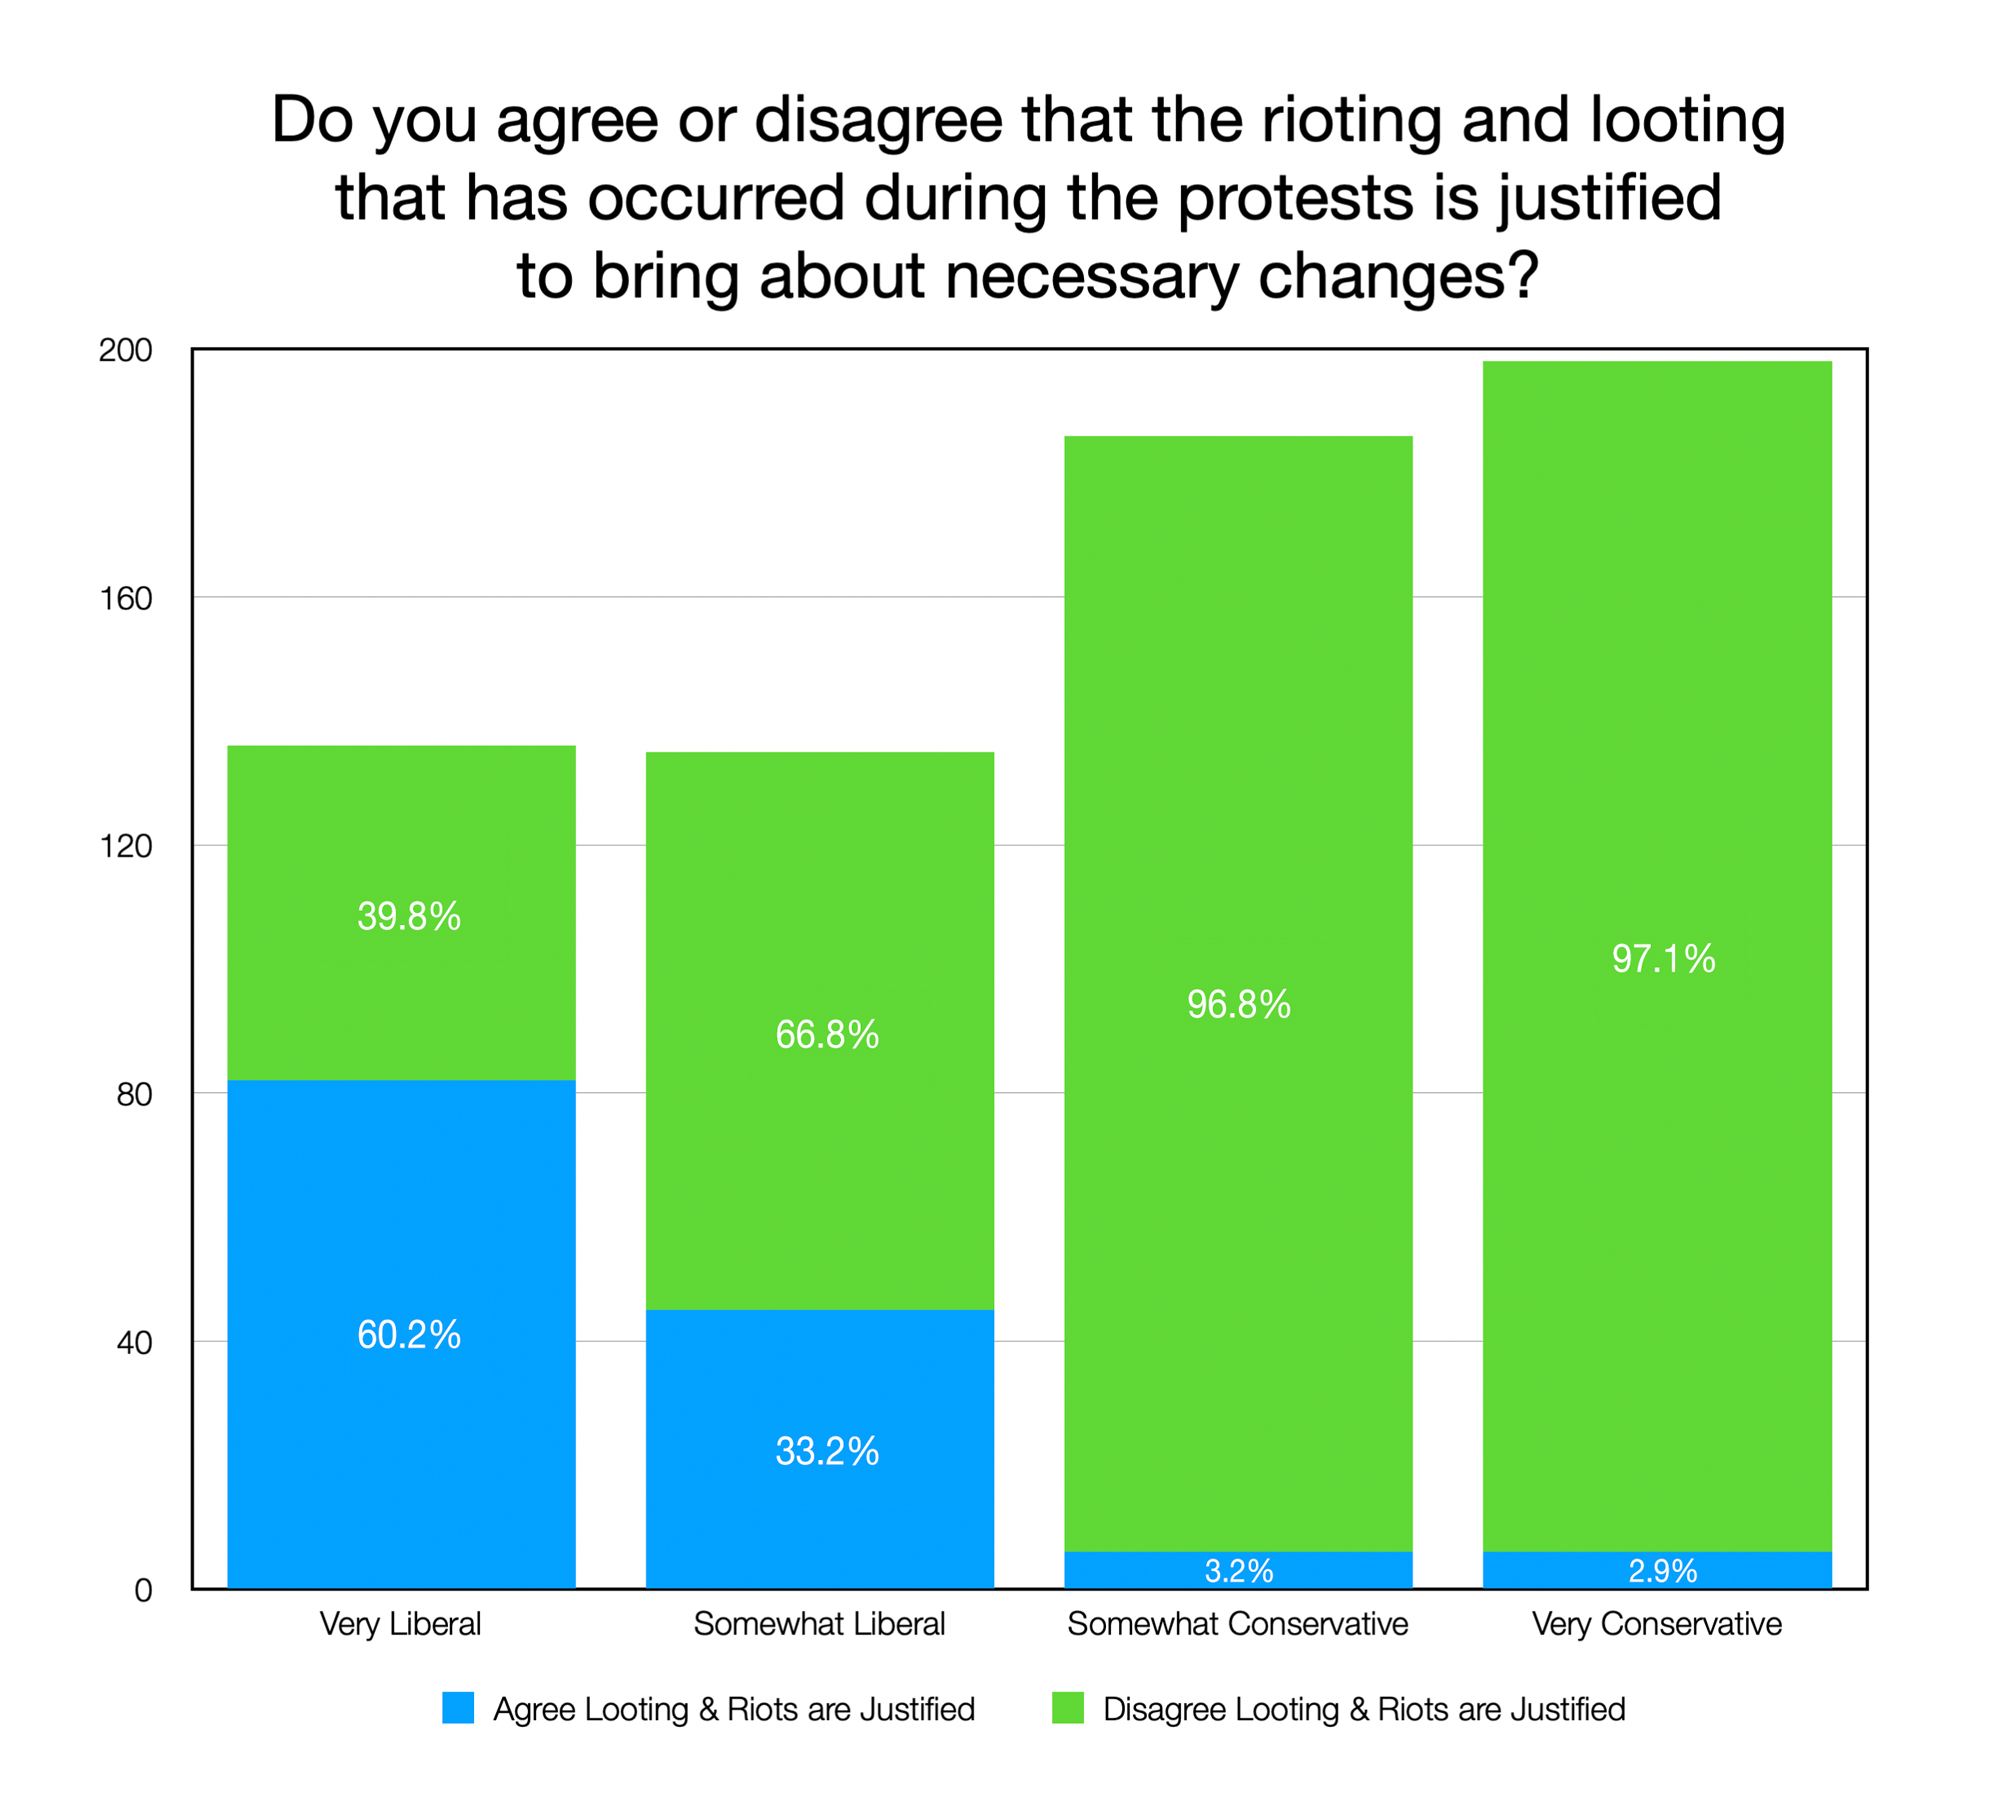 GRAPH: Do you agree or disagree that the rioting and lootingthat has occurred during the protests is justifiedto bring about necessary changes?